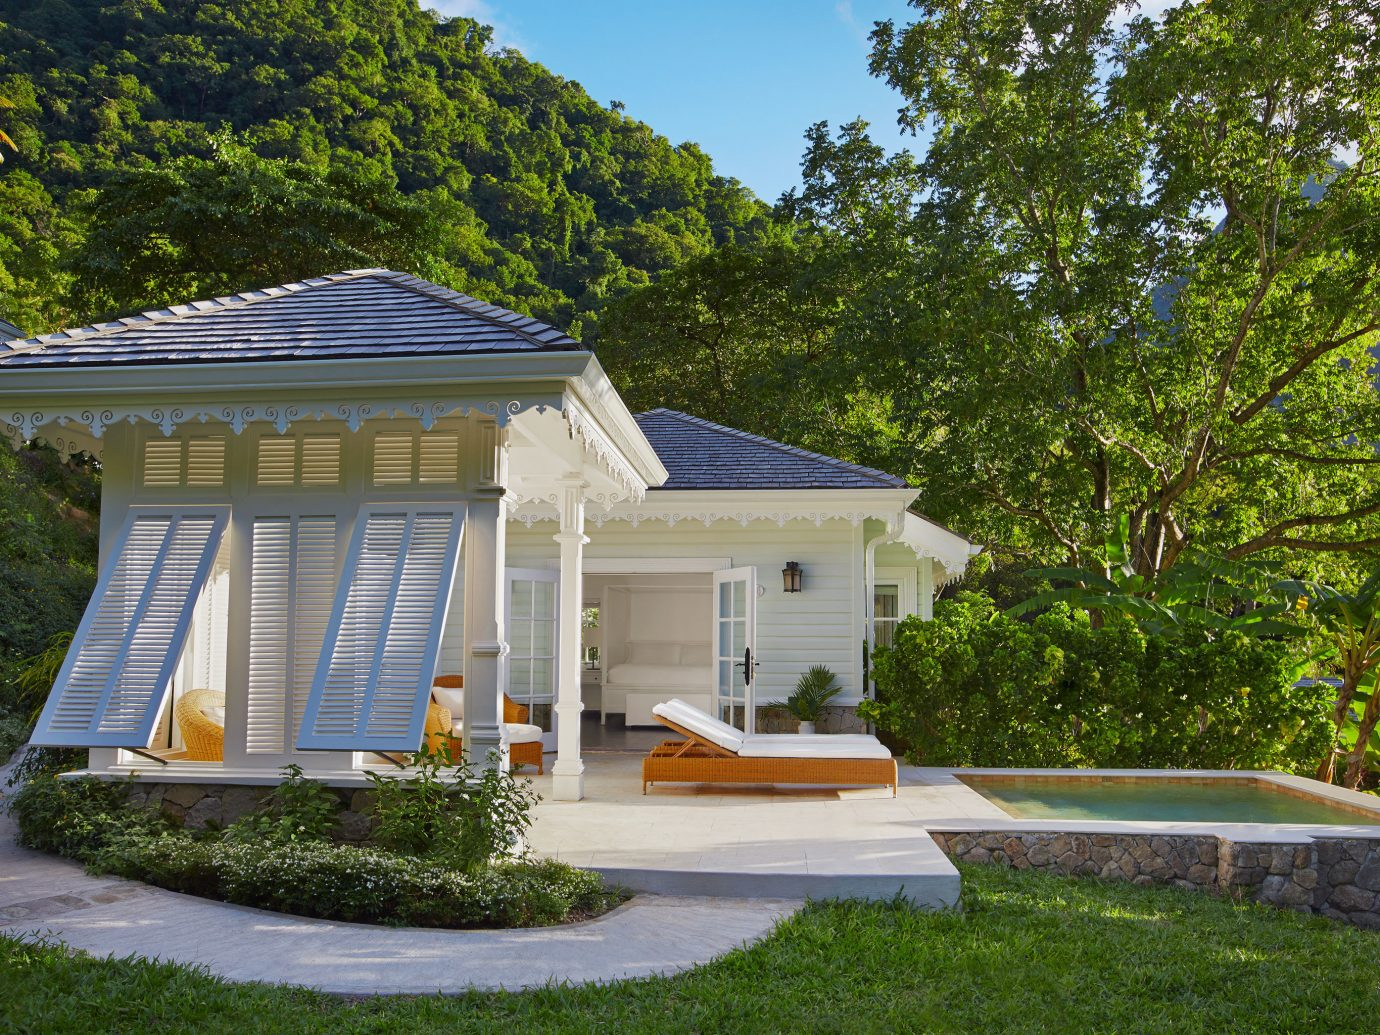 Architecture Buildings Design Exterior Family Hotels Luxury Resort Romance tree outdoor grass house property building home estate backyard cottage Villa real estate pavilion outdoor structure gazebo lawn mansion Garden log cabin yard stone